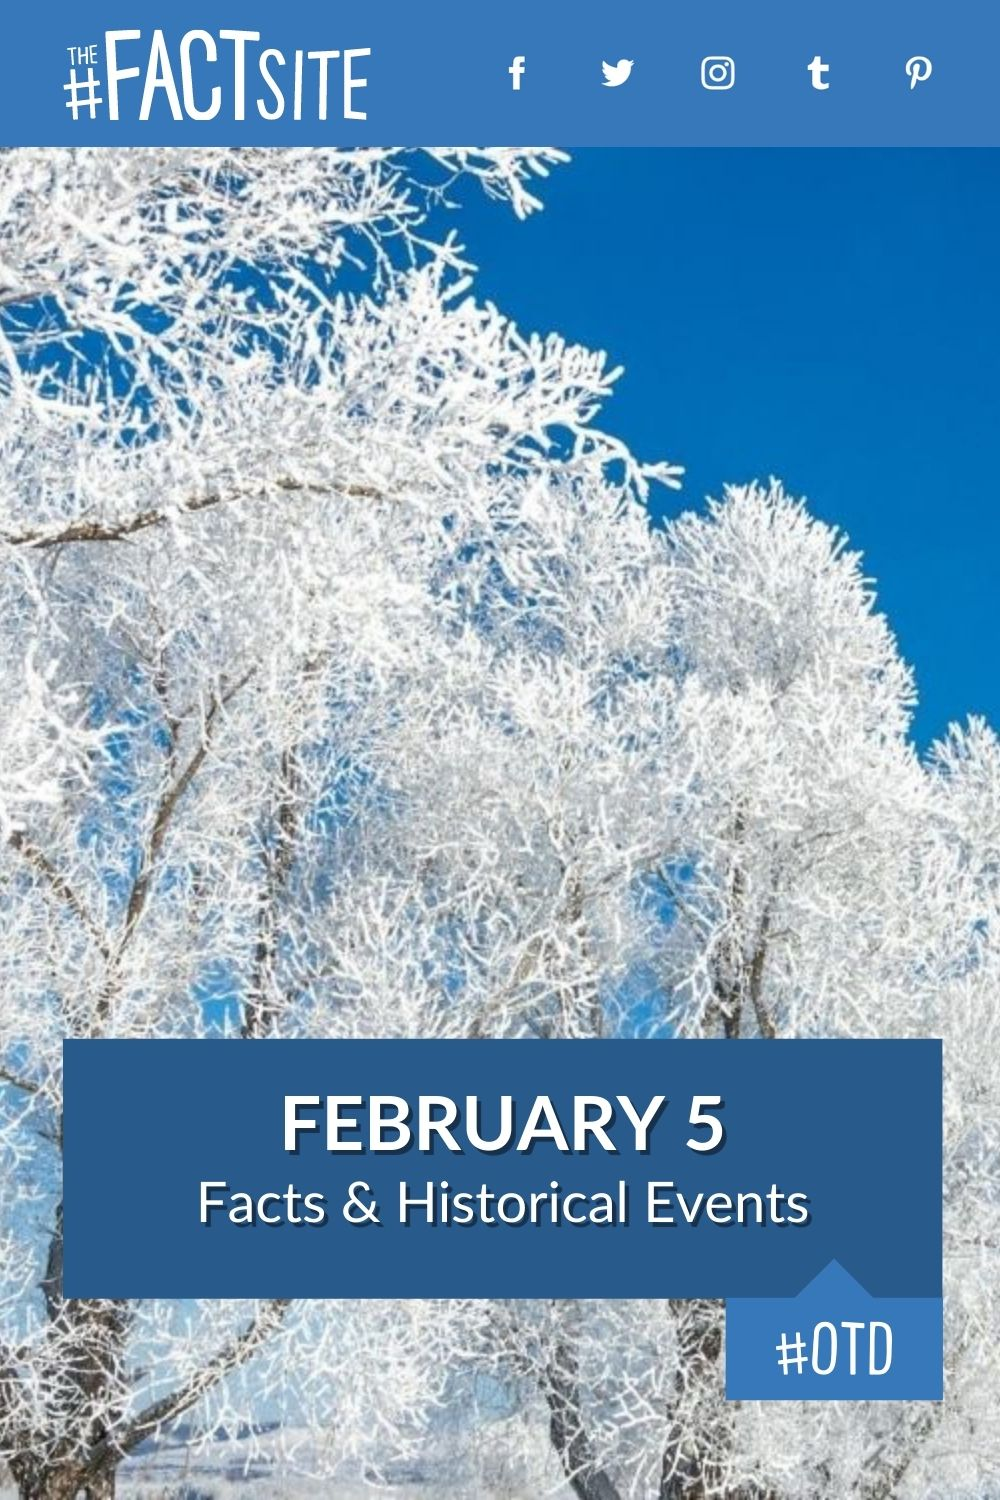 Facts & Historic Events That Happened on February 5